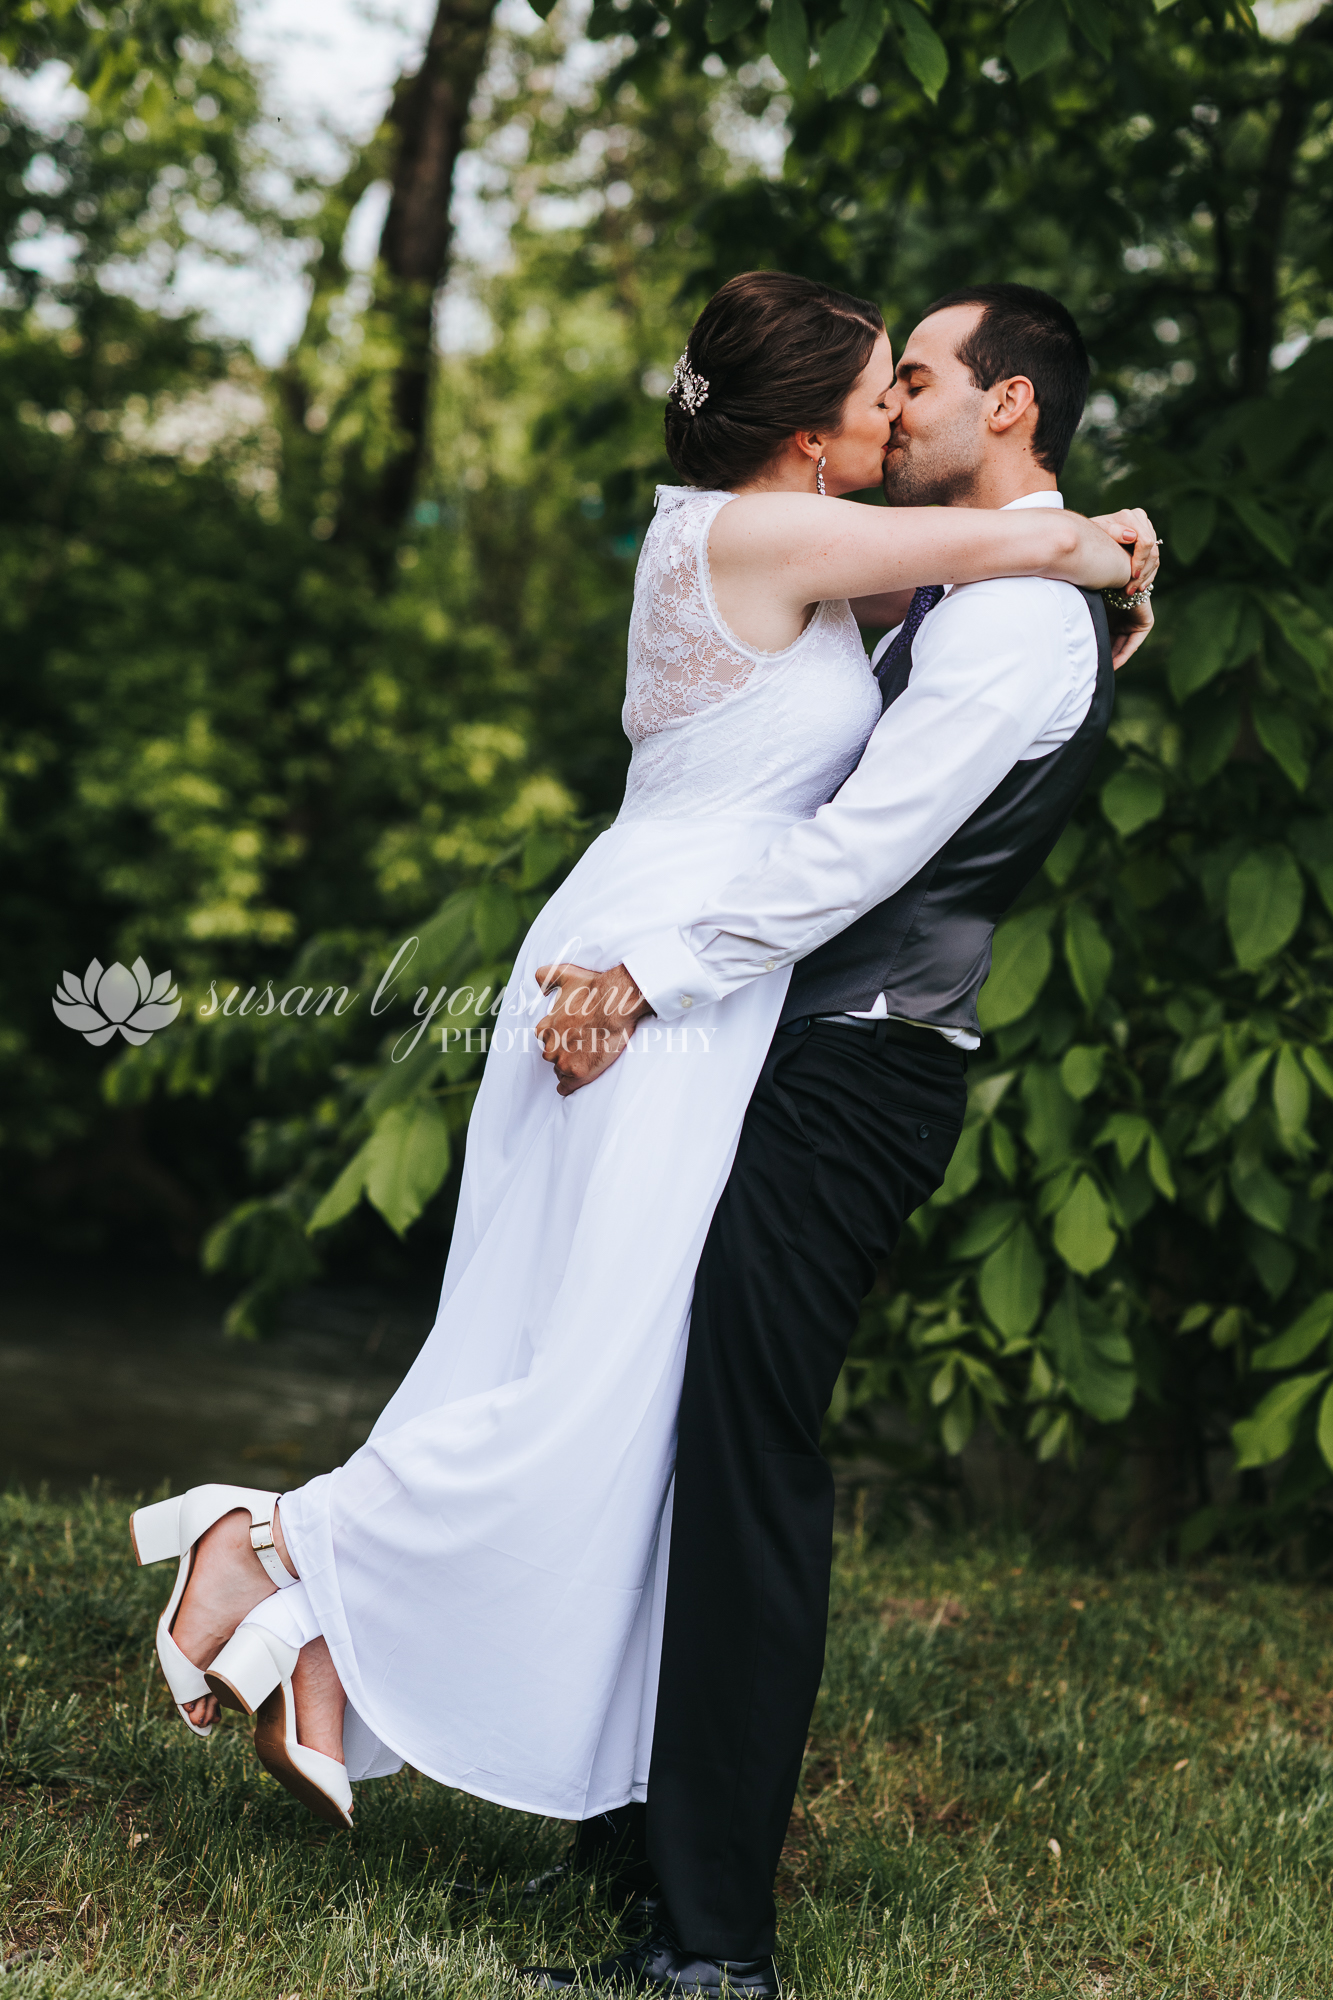 Adena and  Erik Wedding 05-17-2019 SLY Photography-35.jpg